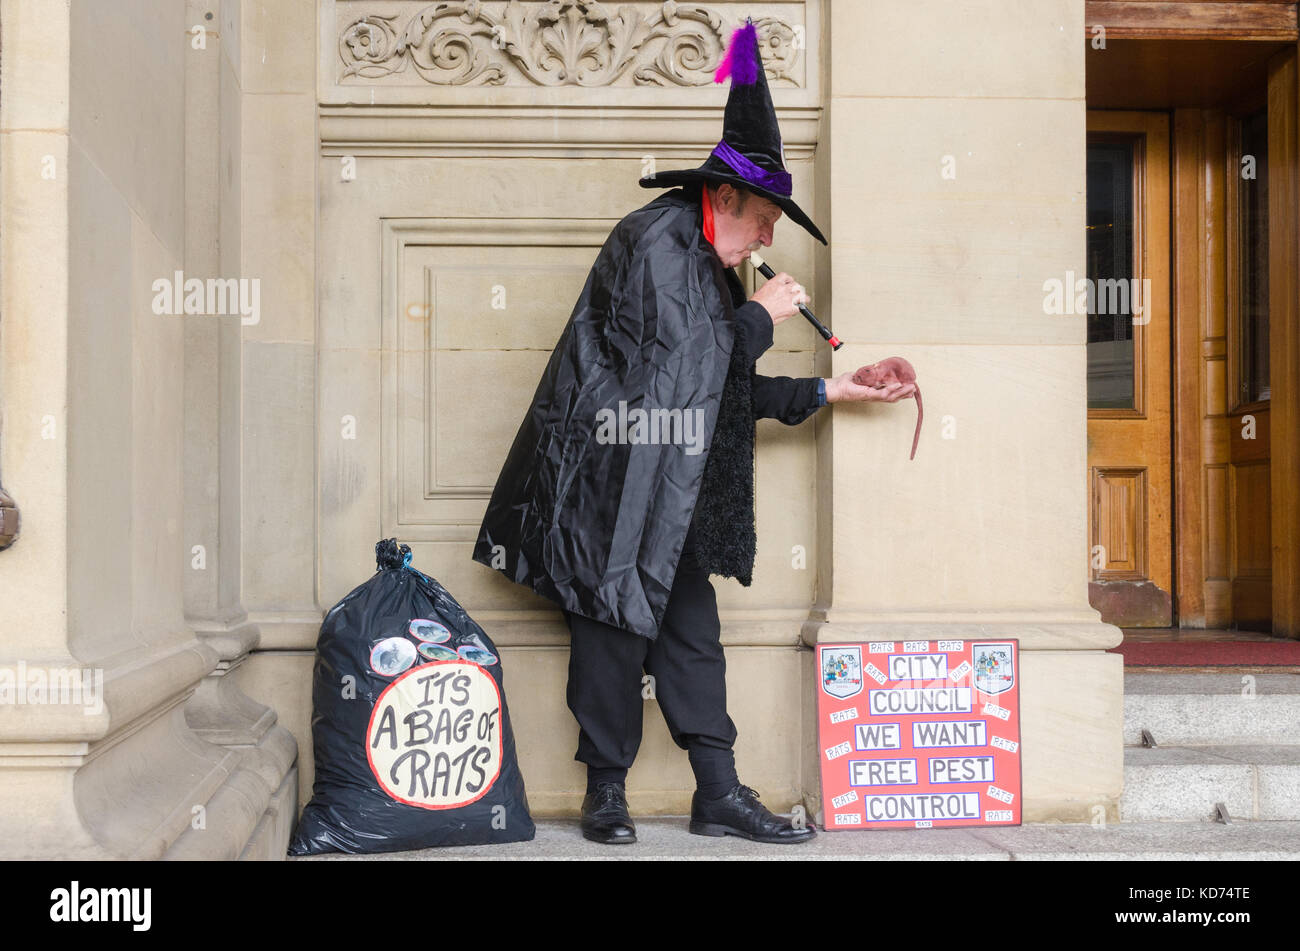 Man dressed as Pied Piper of Hamlyn protests outside Birmingham City Council office in Victoria Square about number - Stock Image